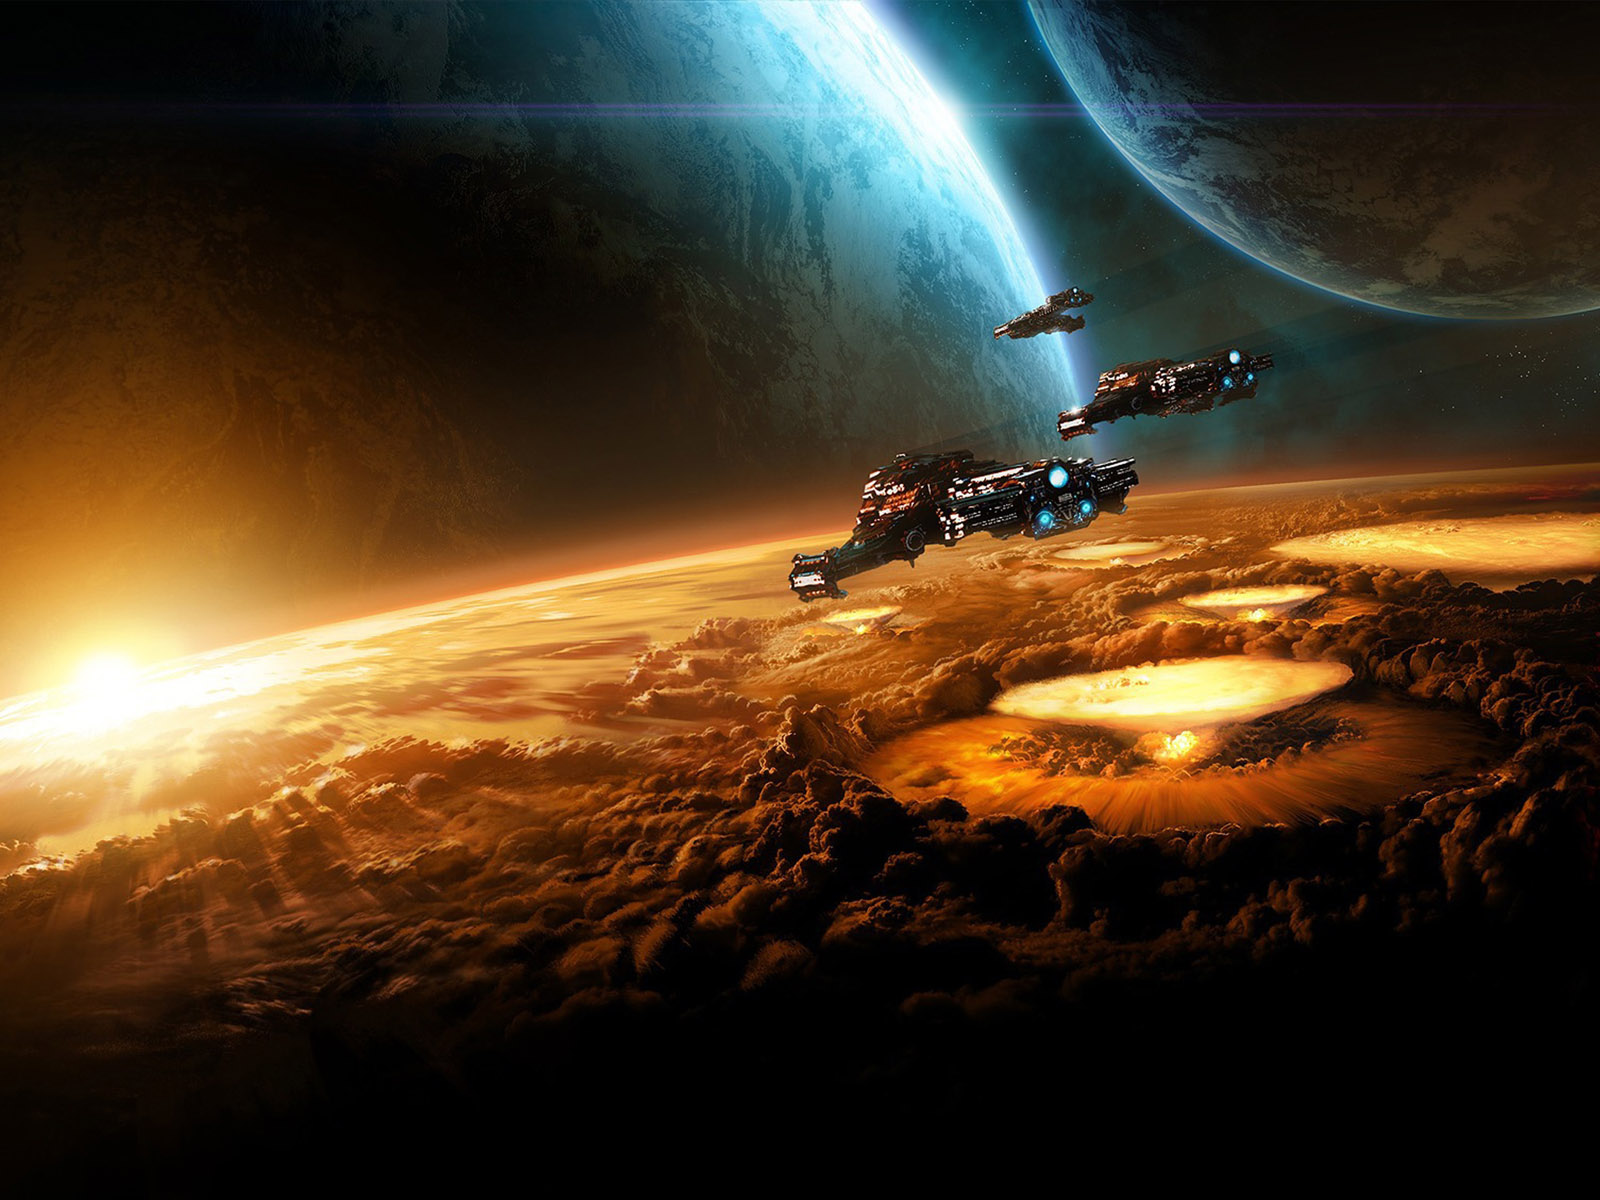 sci fi wallpaper Cool Desktop 1920x1080px HD 248 Backgrounds